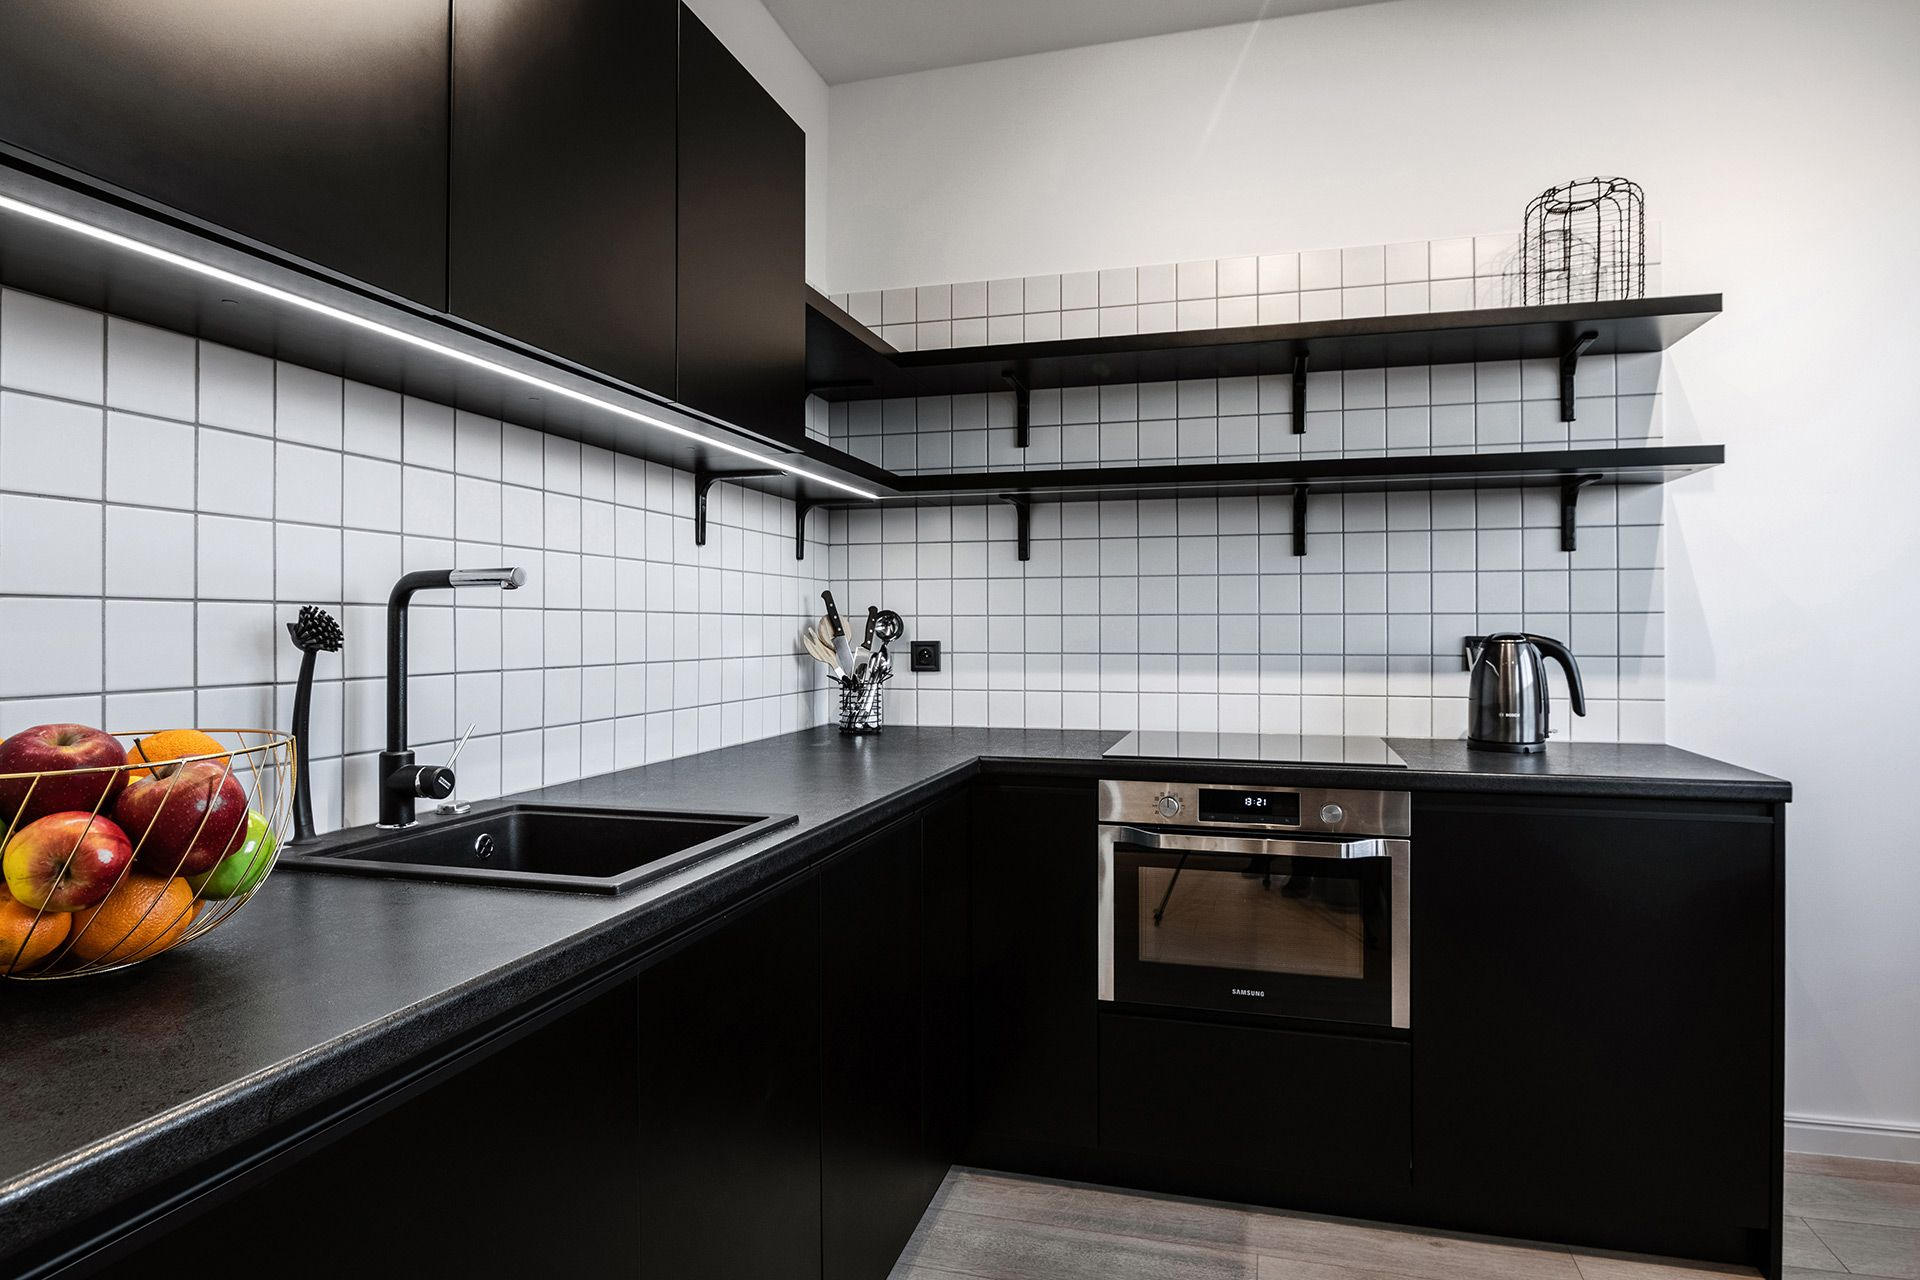 Studio - Large apartment to rent in Warsaw UPR-A-057-2